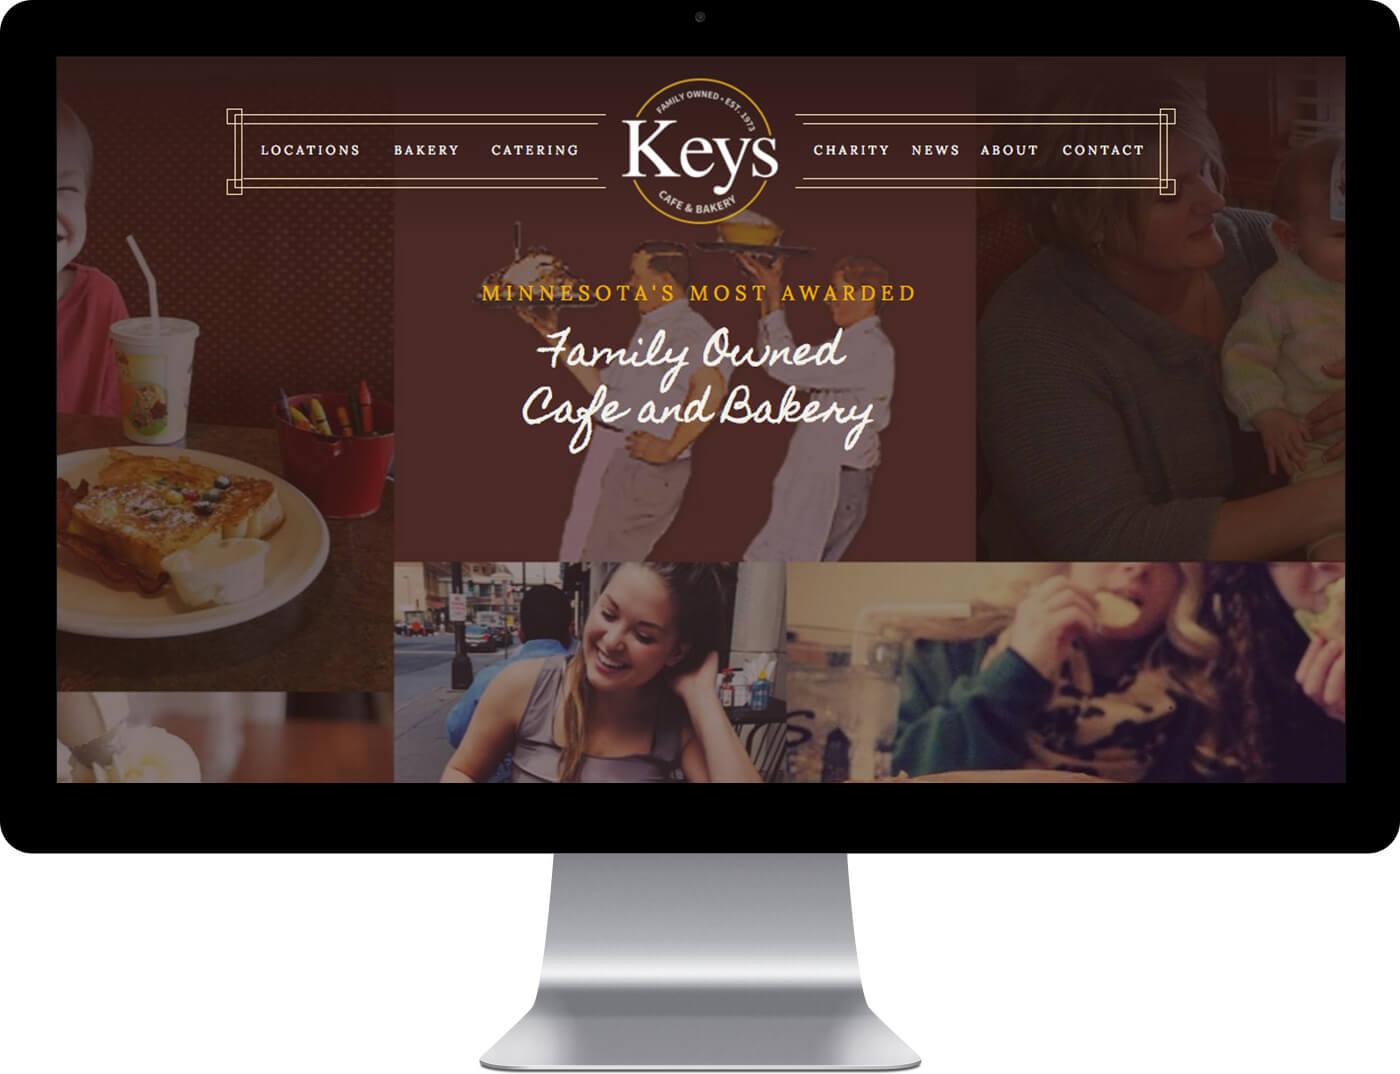 Keys Cafe website design on desktop monitor